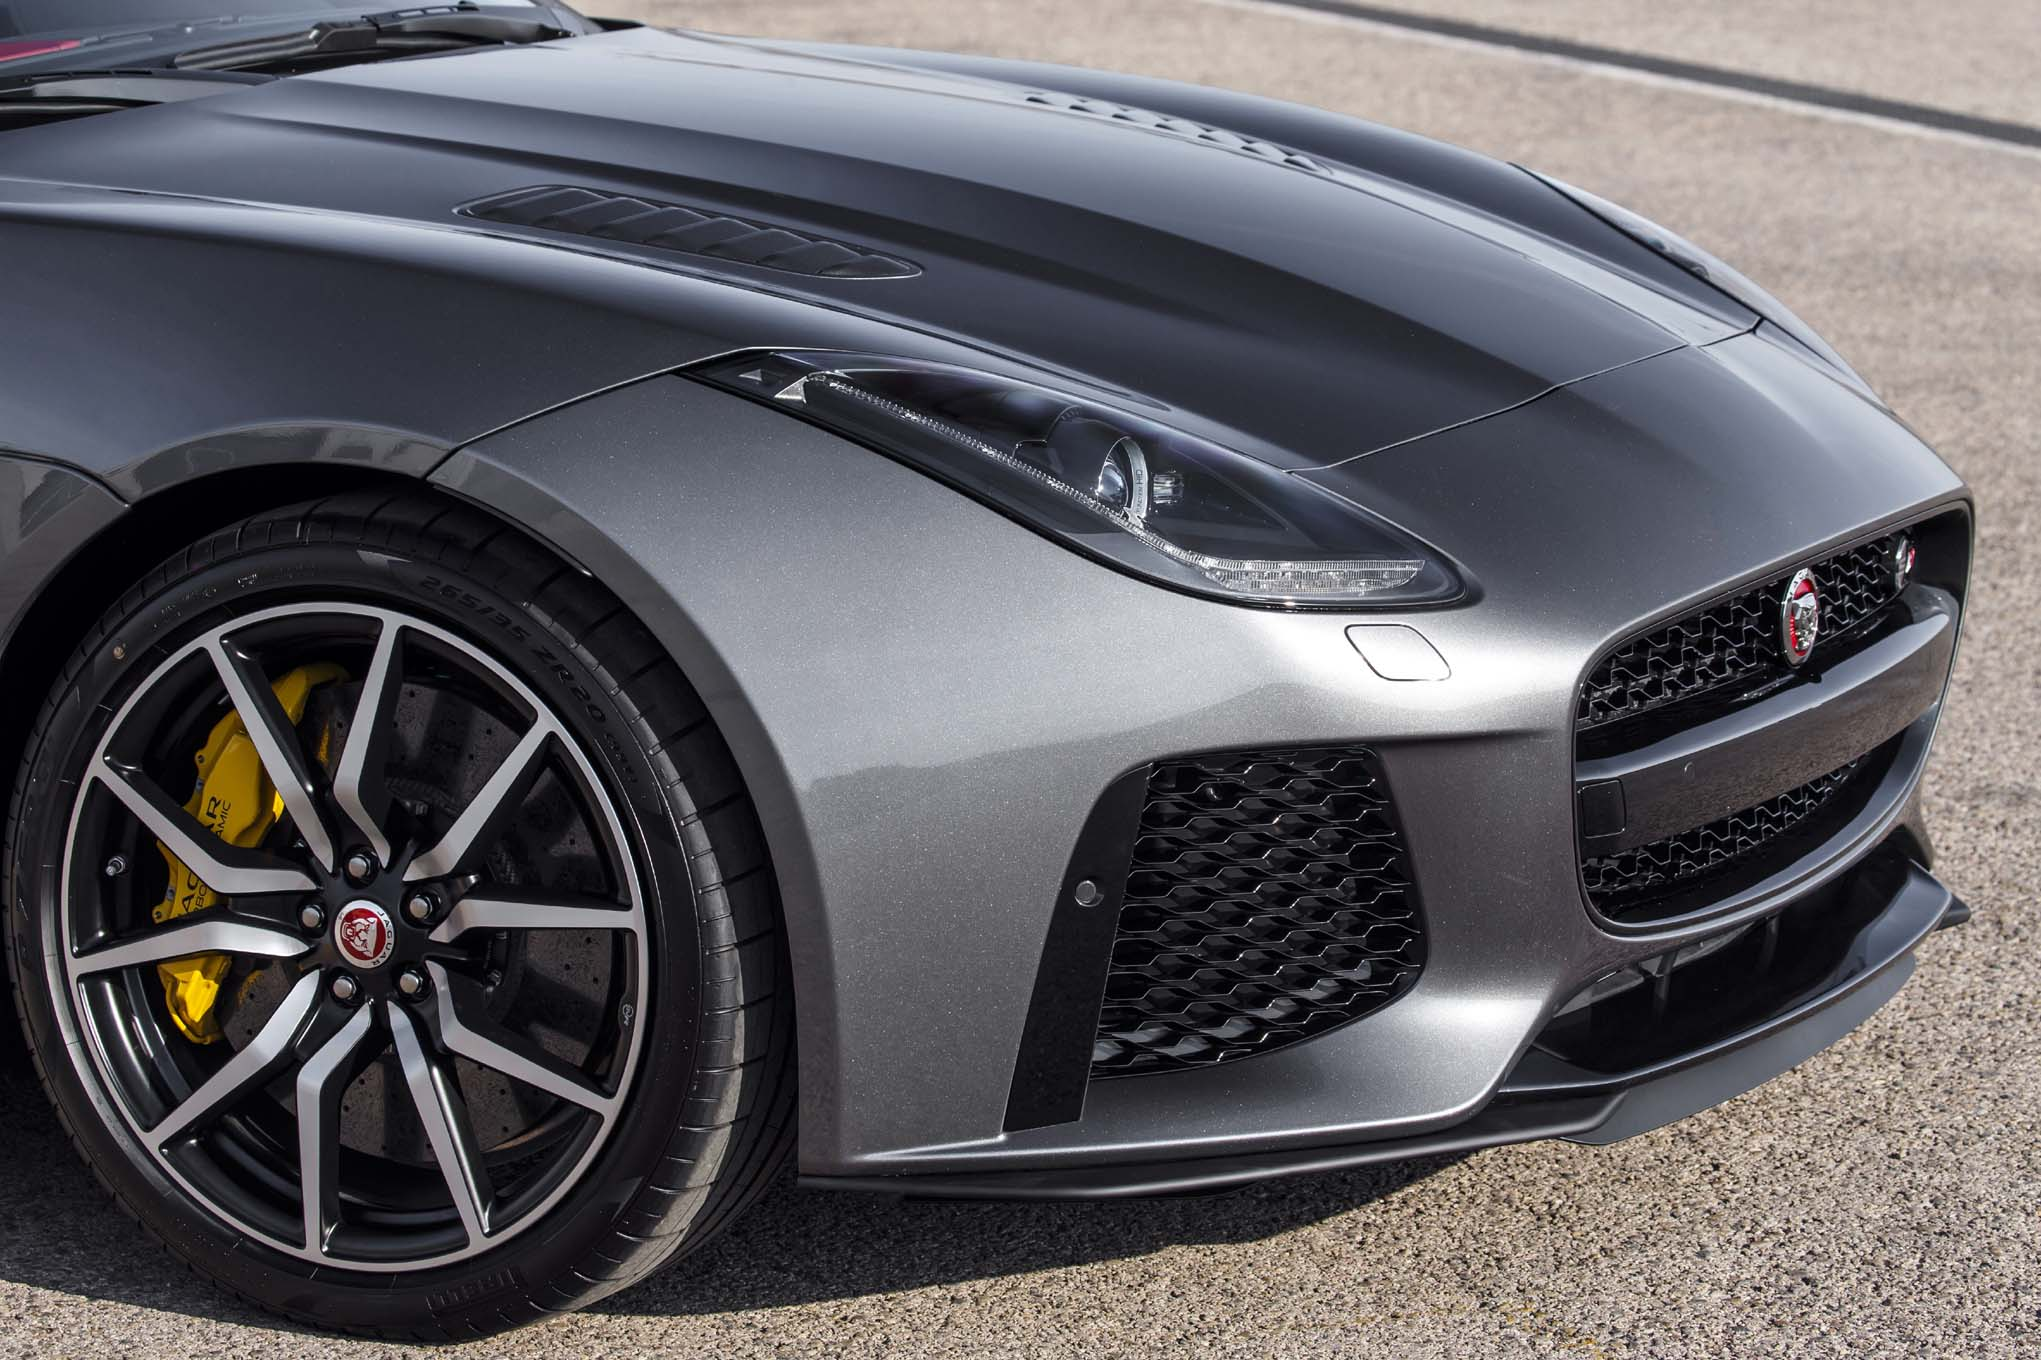 The Jaguar FType SVR has arrived and its quick Top